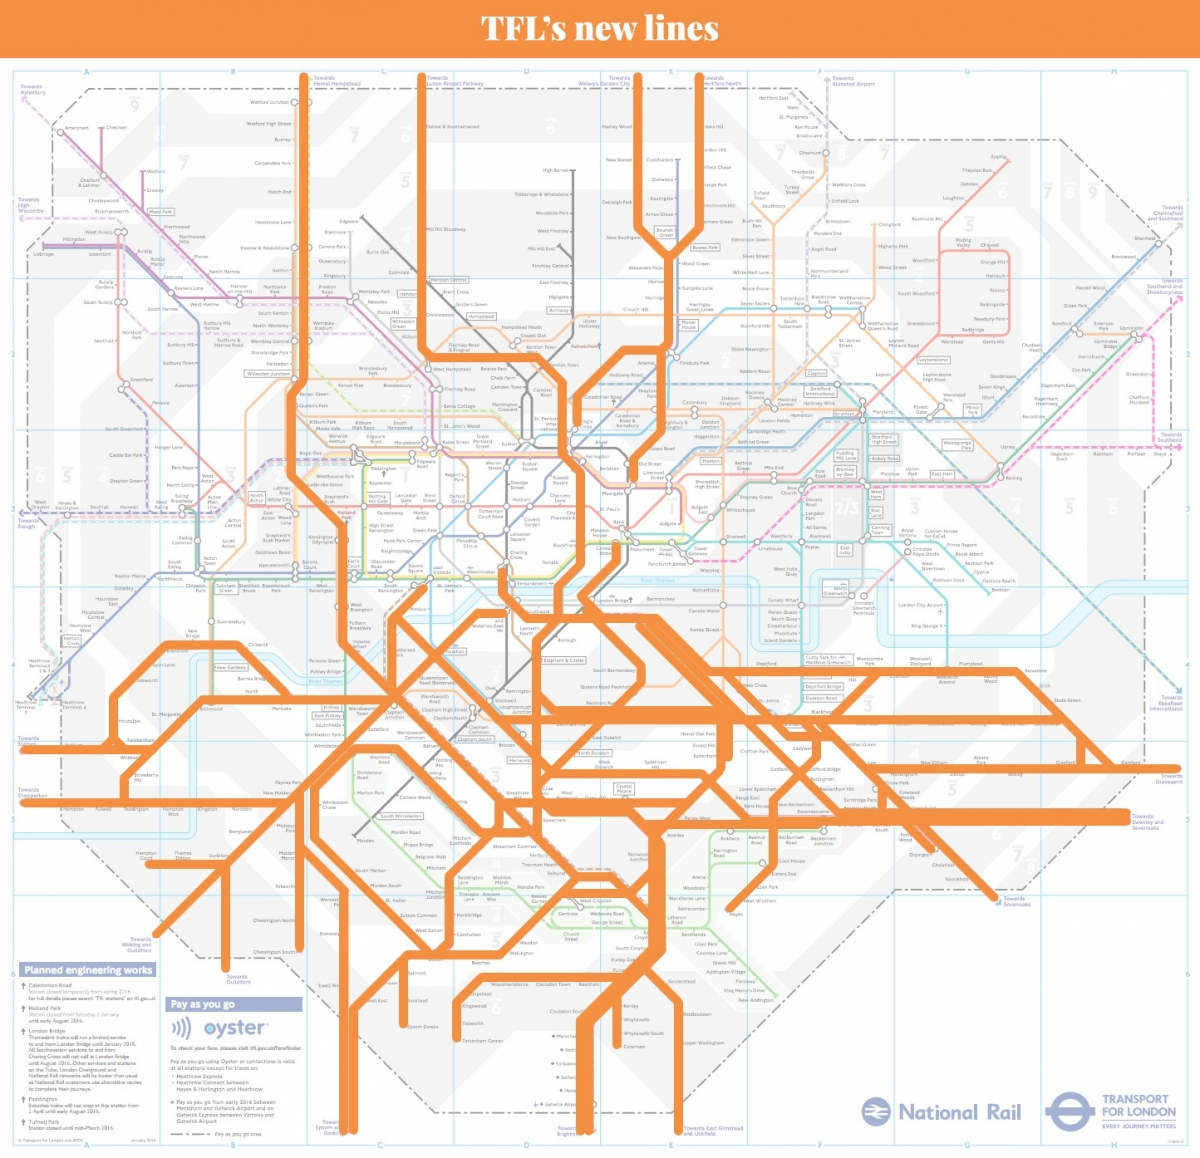 London rail plan